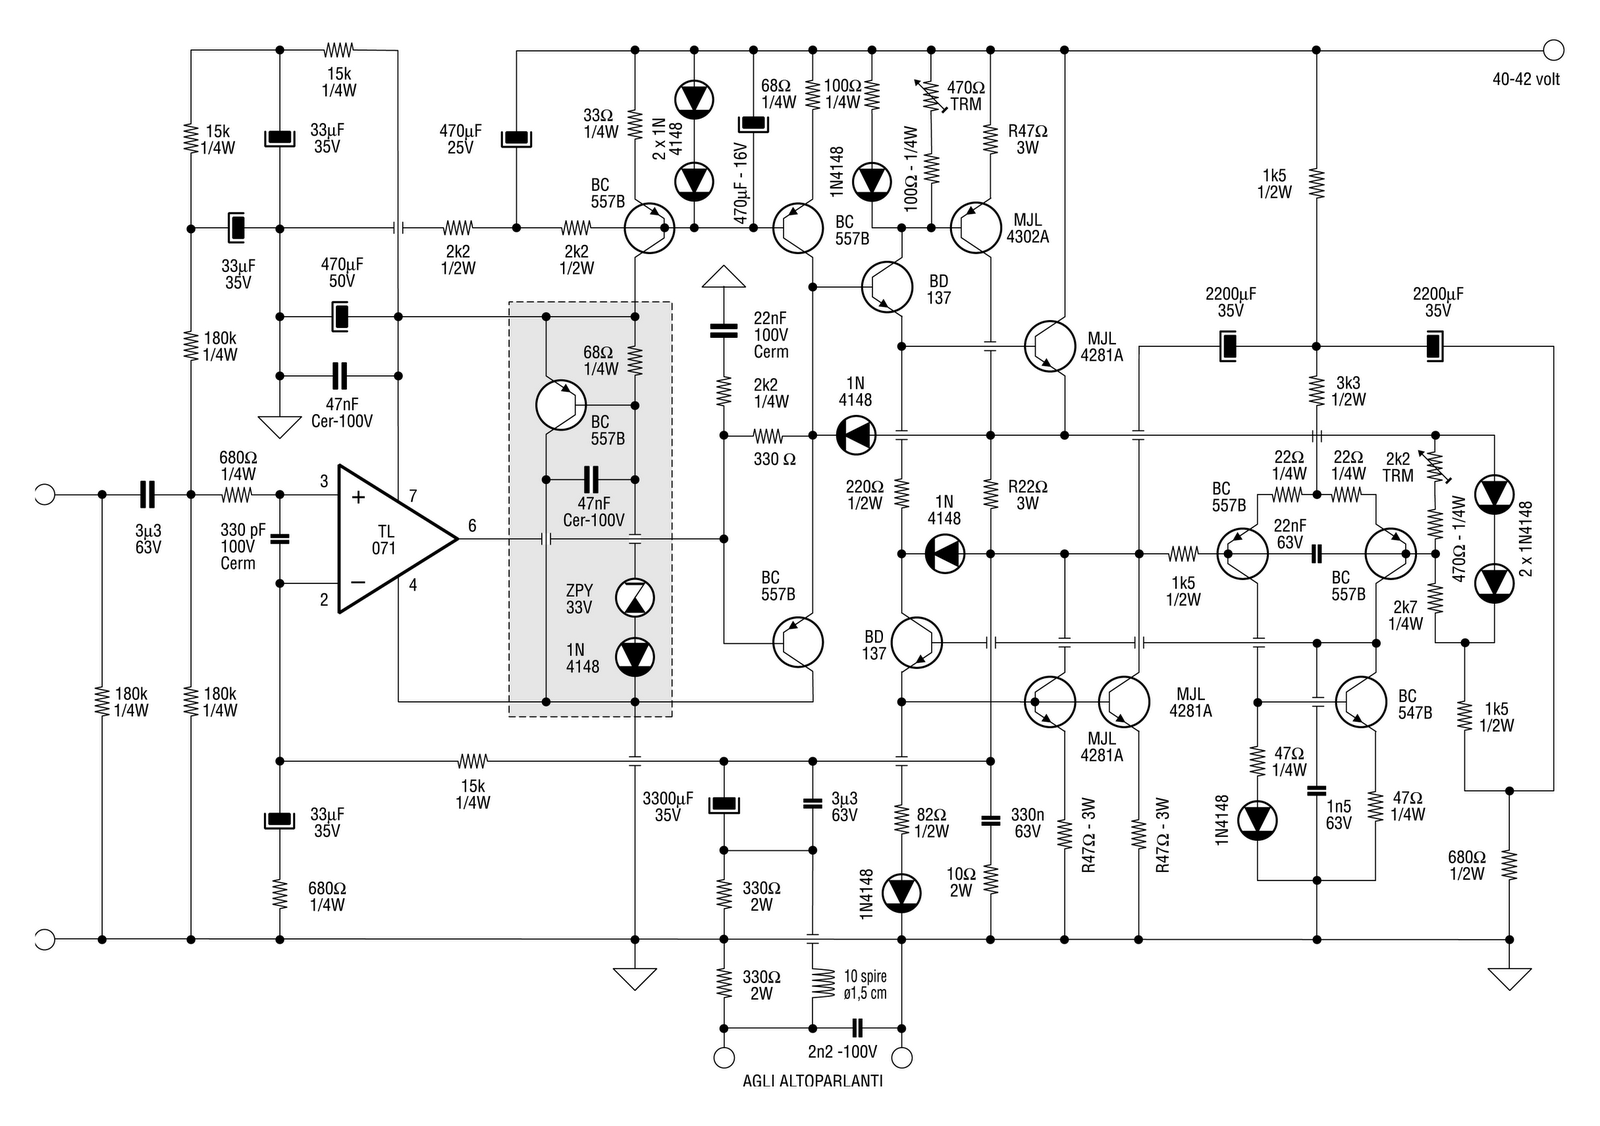 An Active Current Dump Amplifier Design Idea Diyaudio Circuit Tubeamplifier Audiocircuit Diagram Click The Image To Open In Full Size